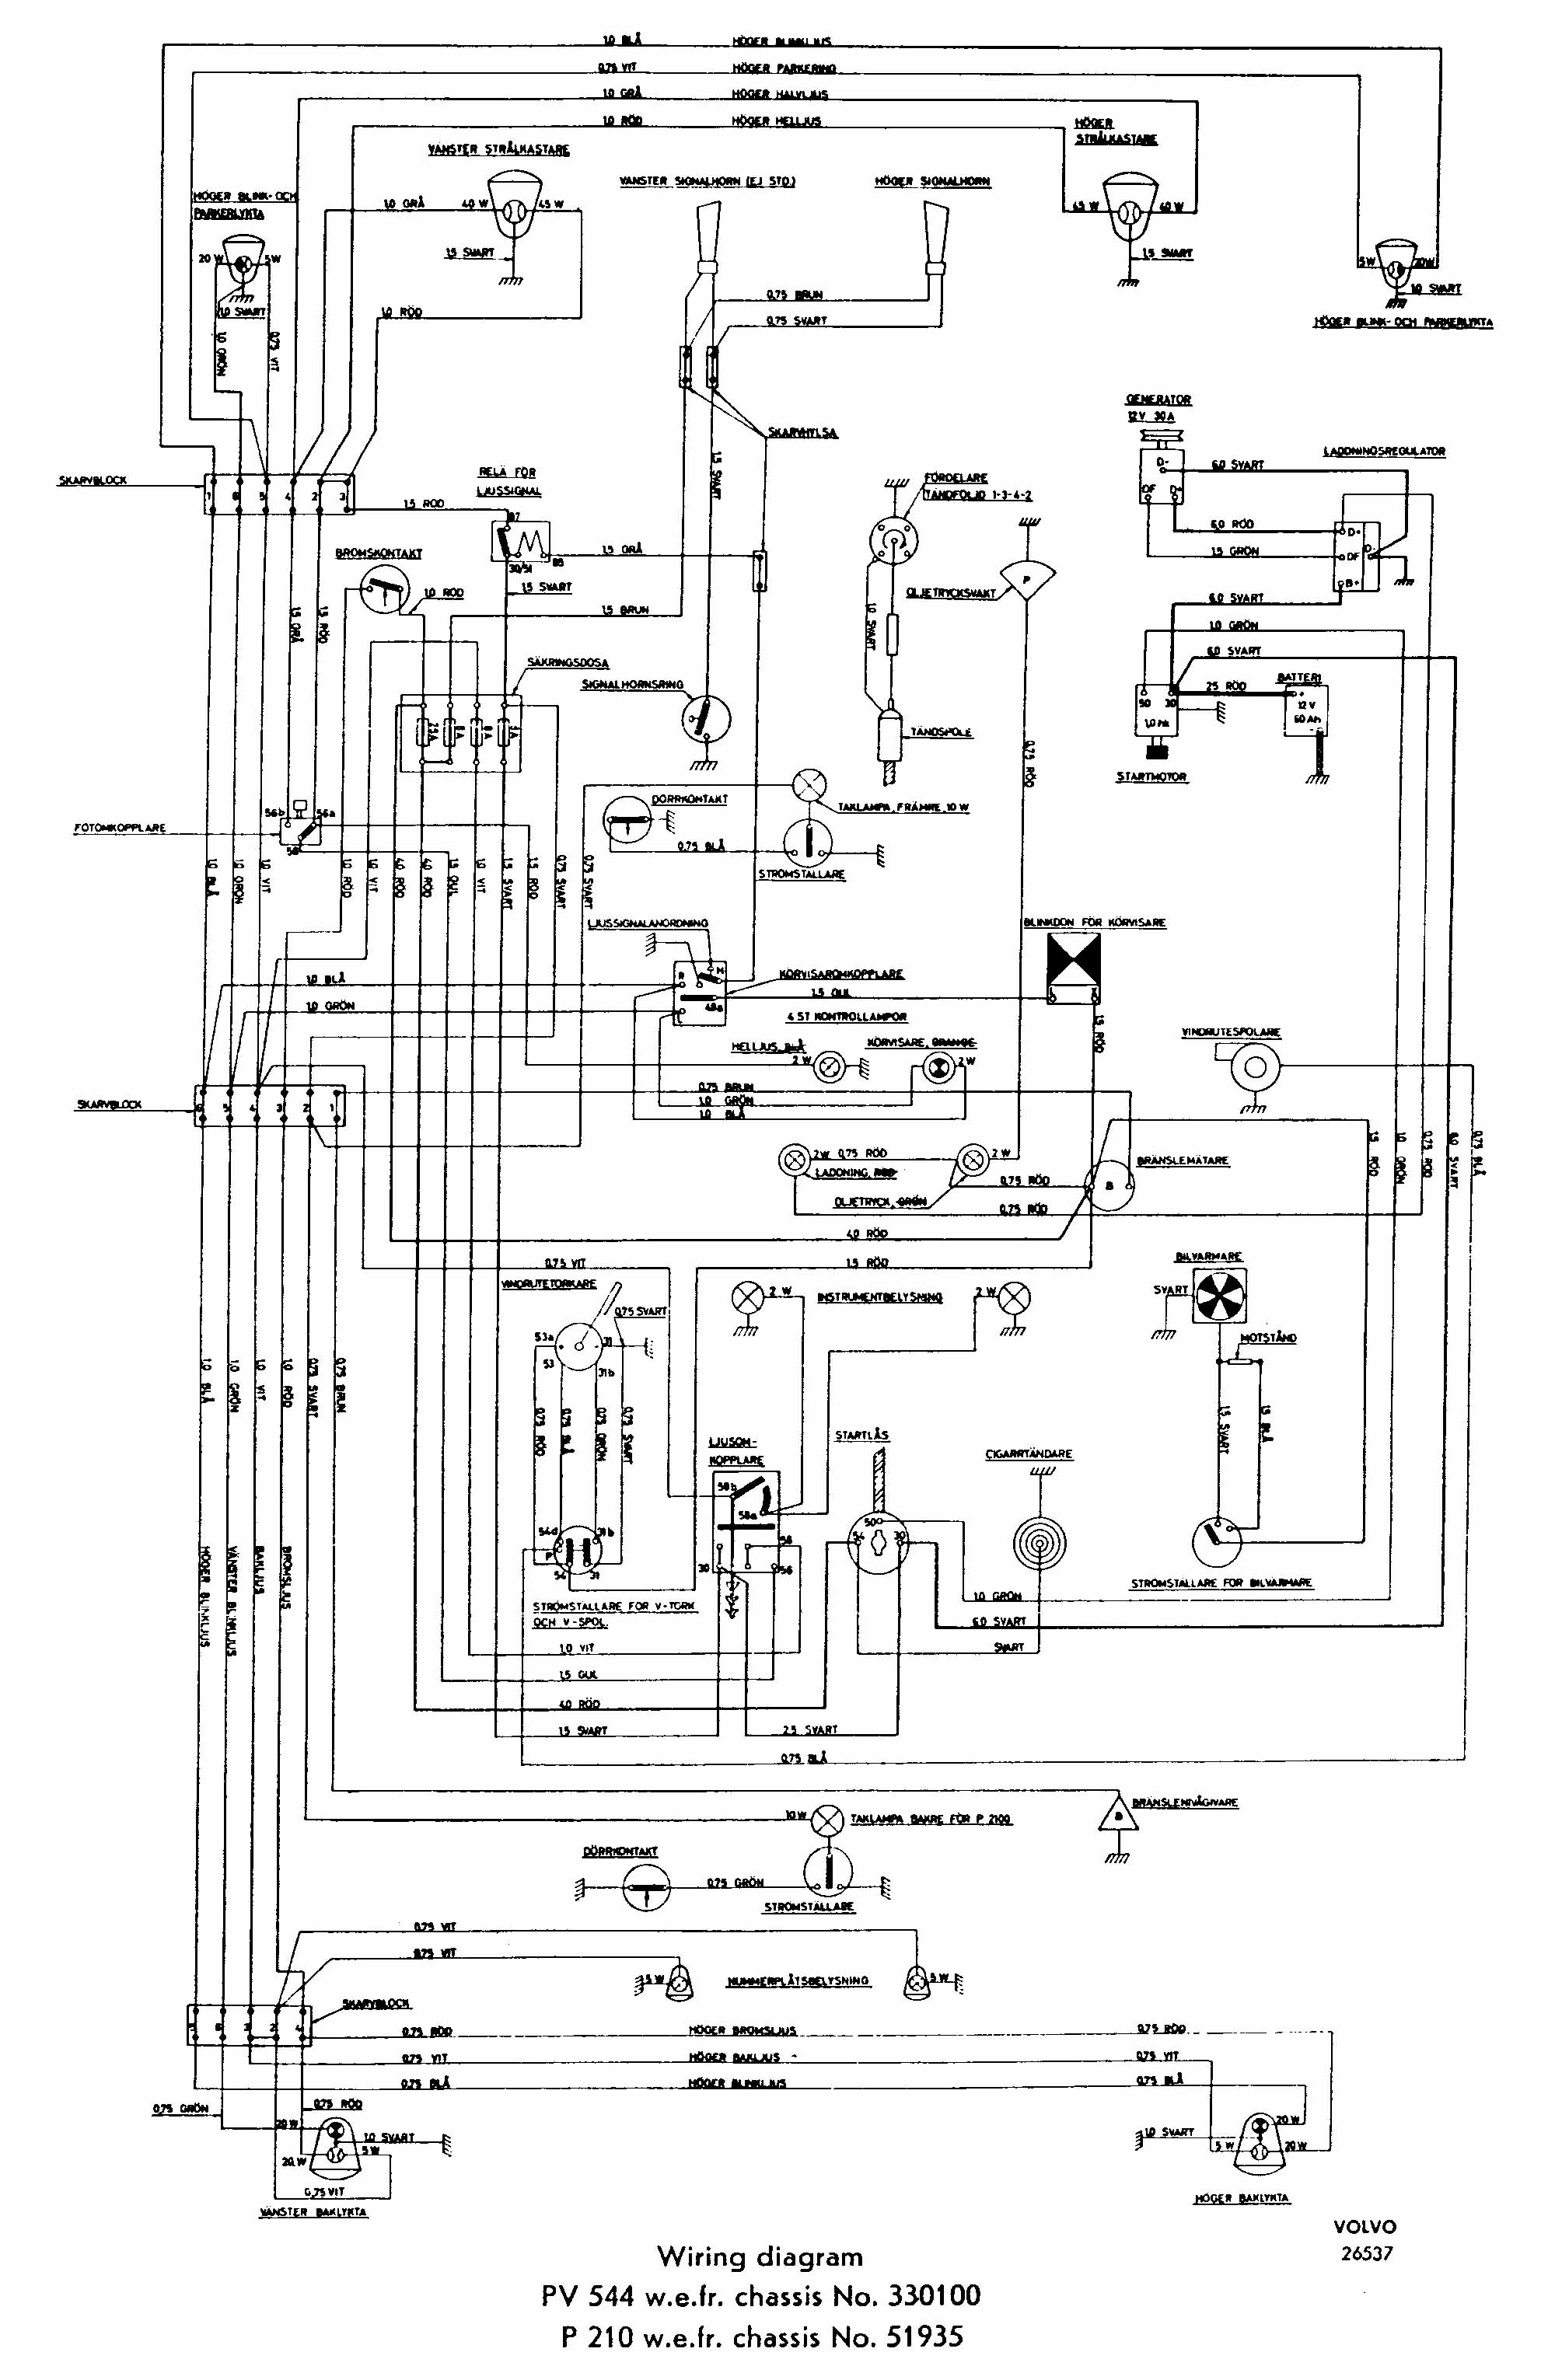 hight resolution of ez go wiring diagram 79 wiring library rh 52 evitta de em 235 wiring diagram em 104 wiring diagram